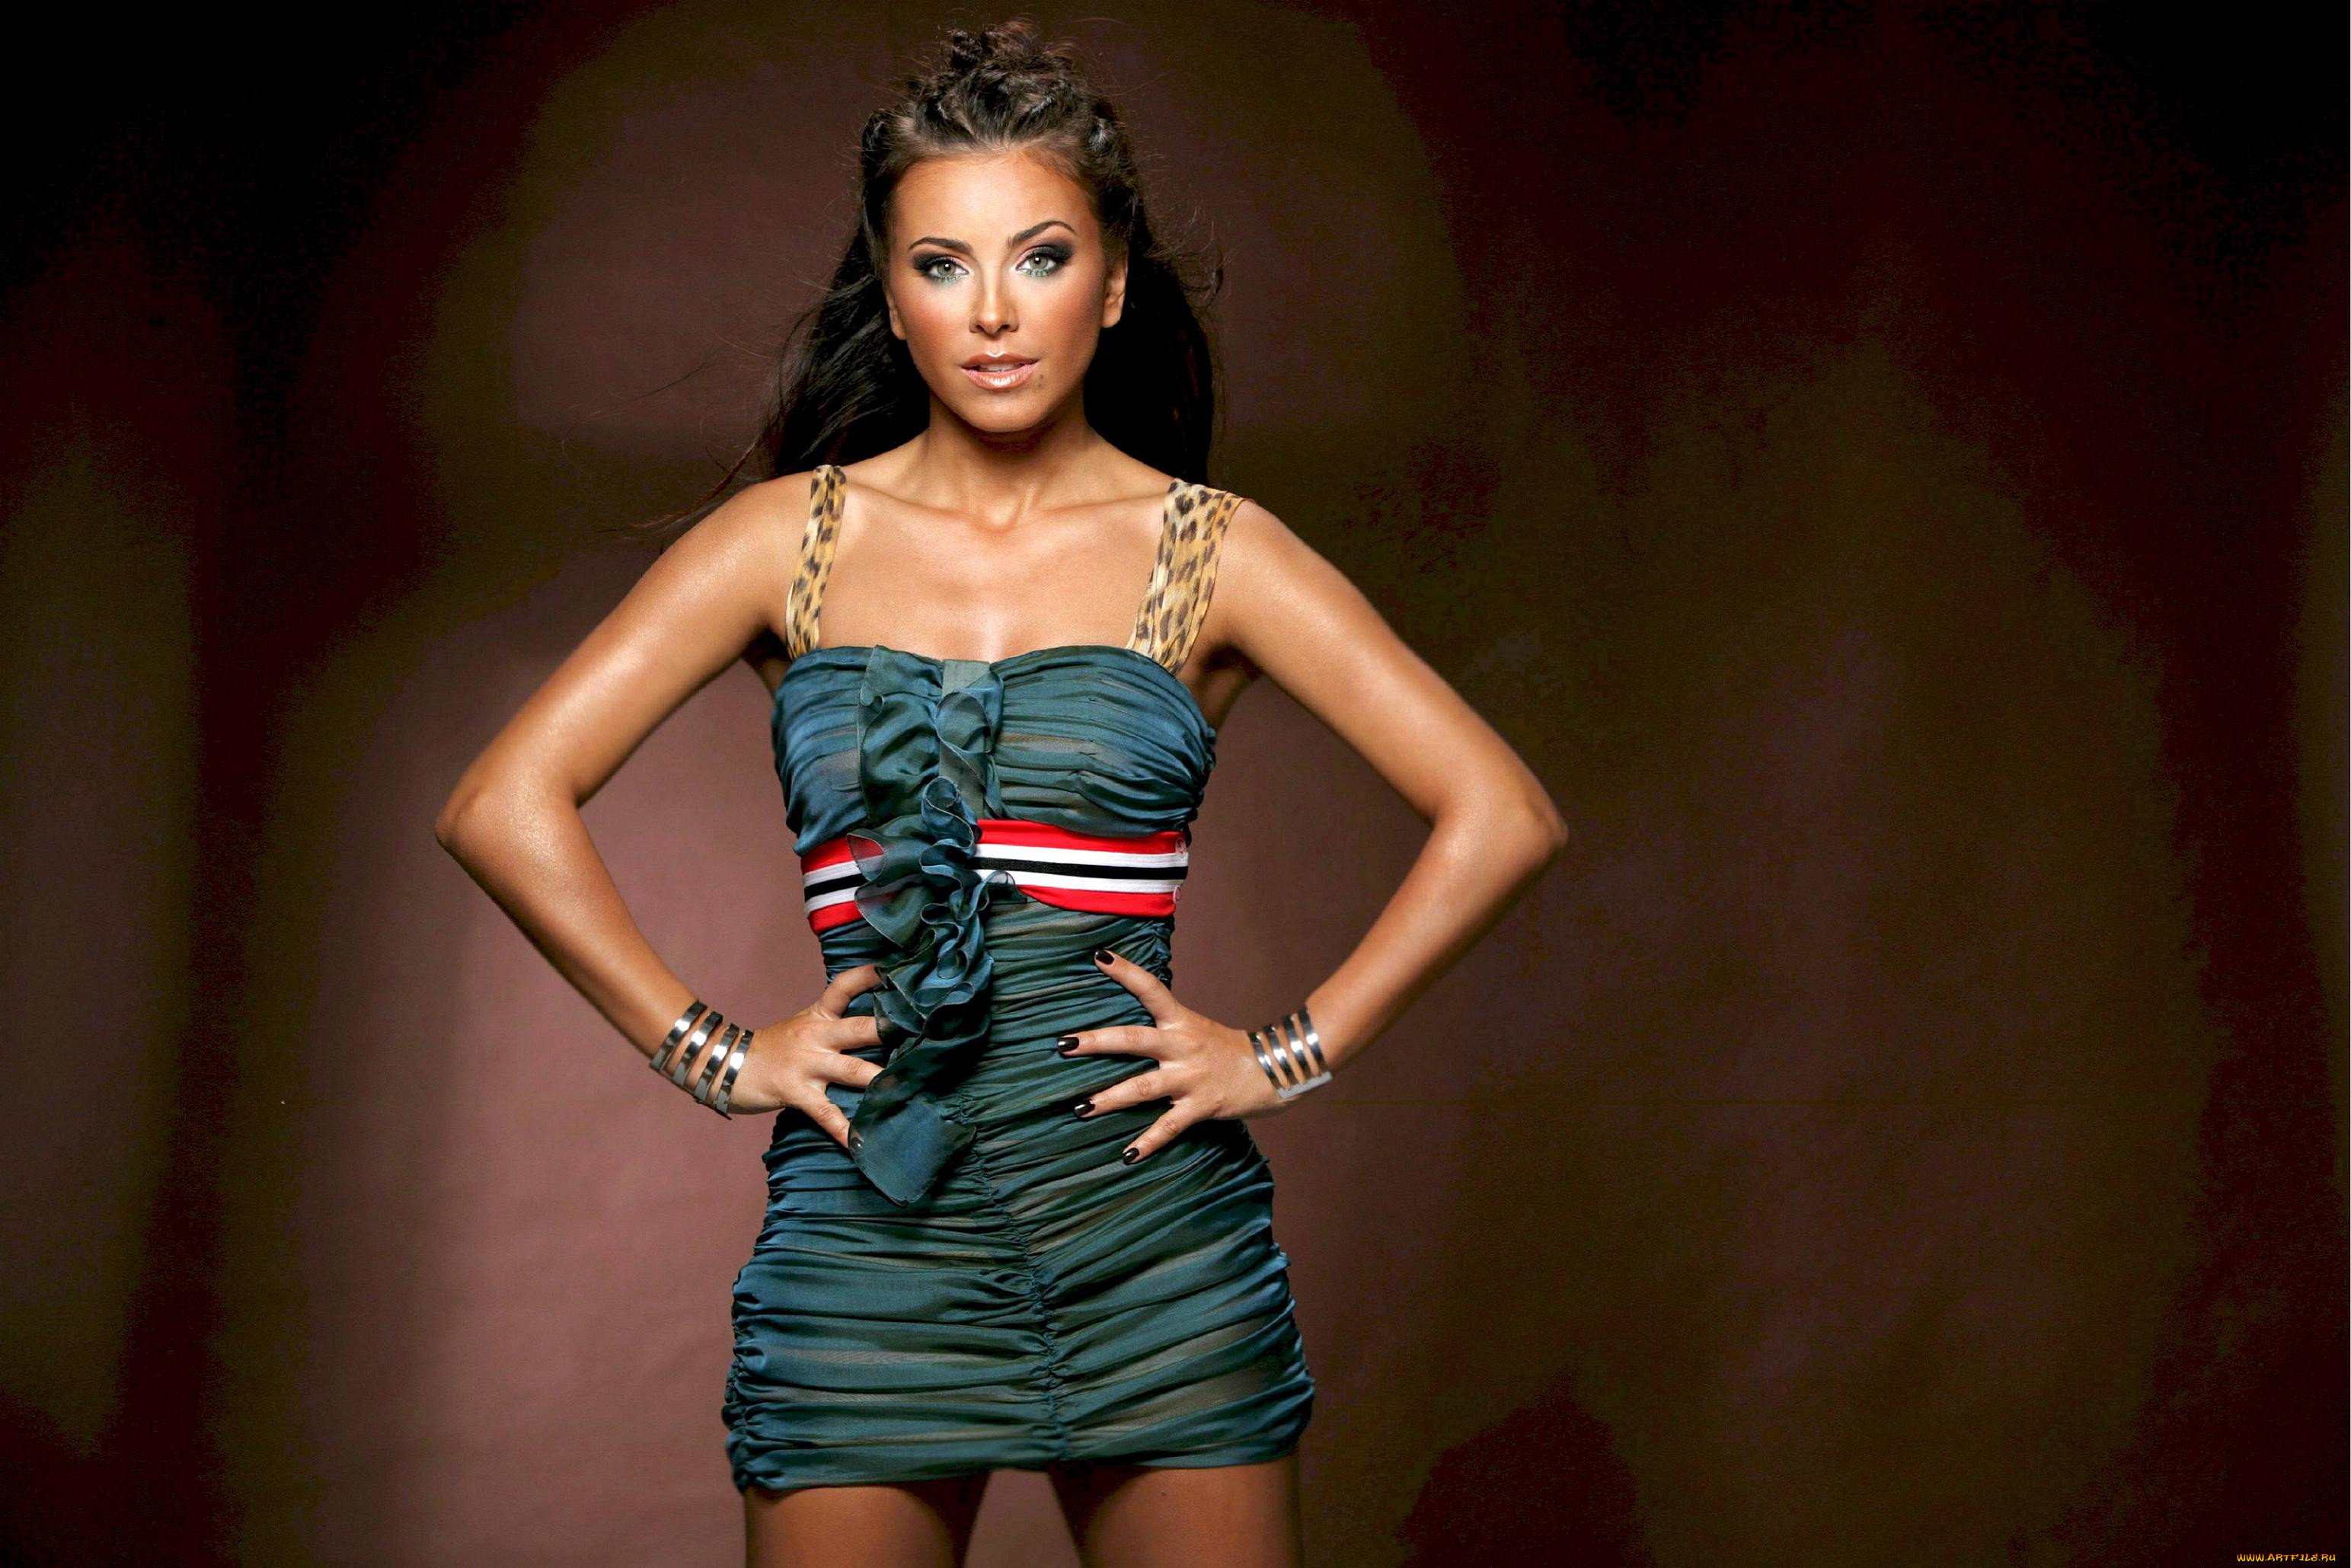 Lady Ukraine Ani Lorak File